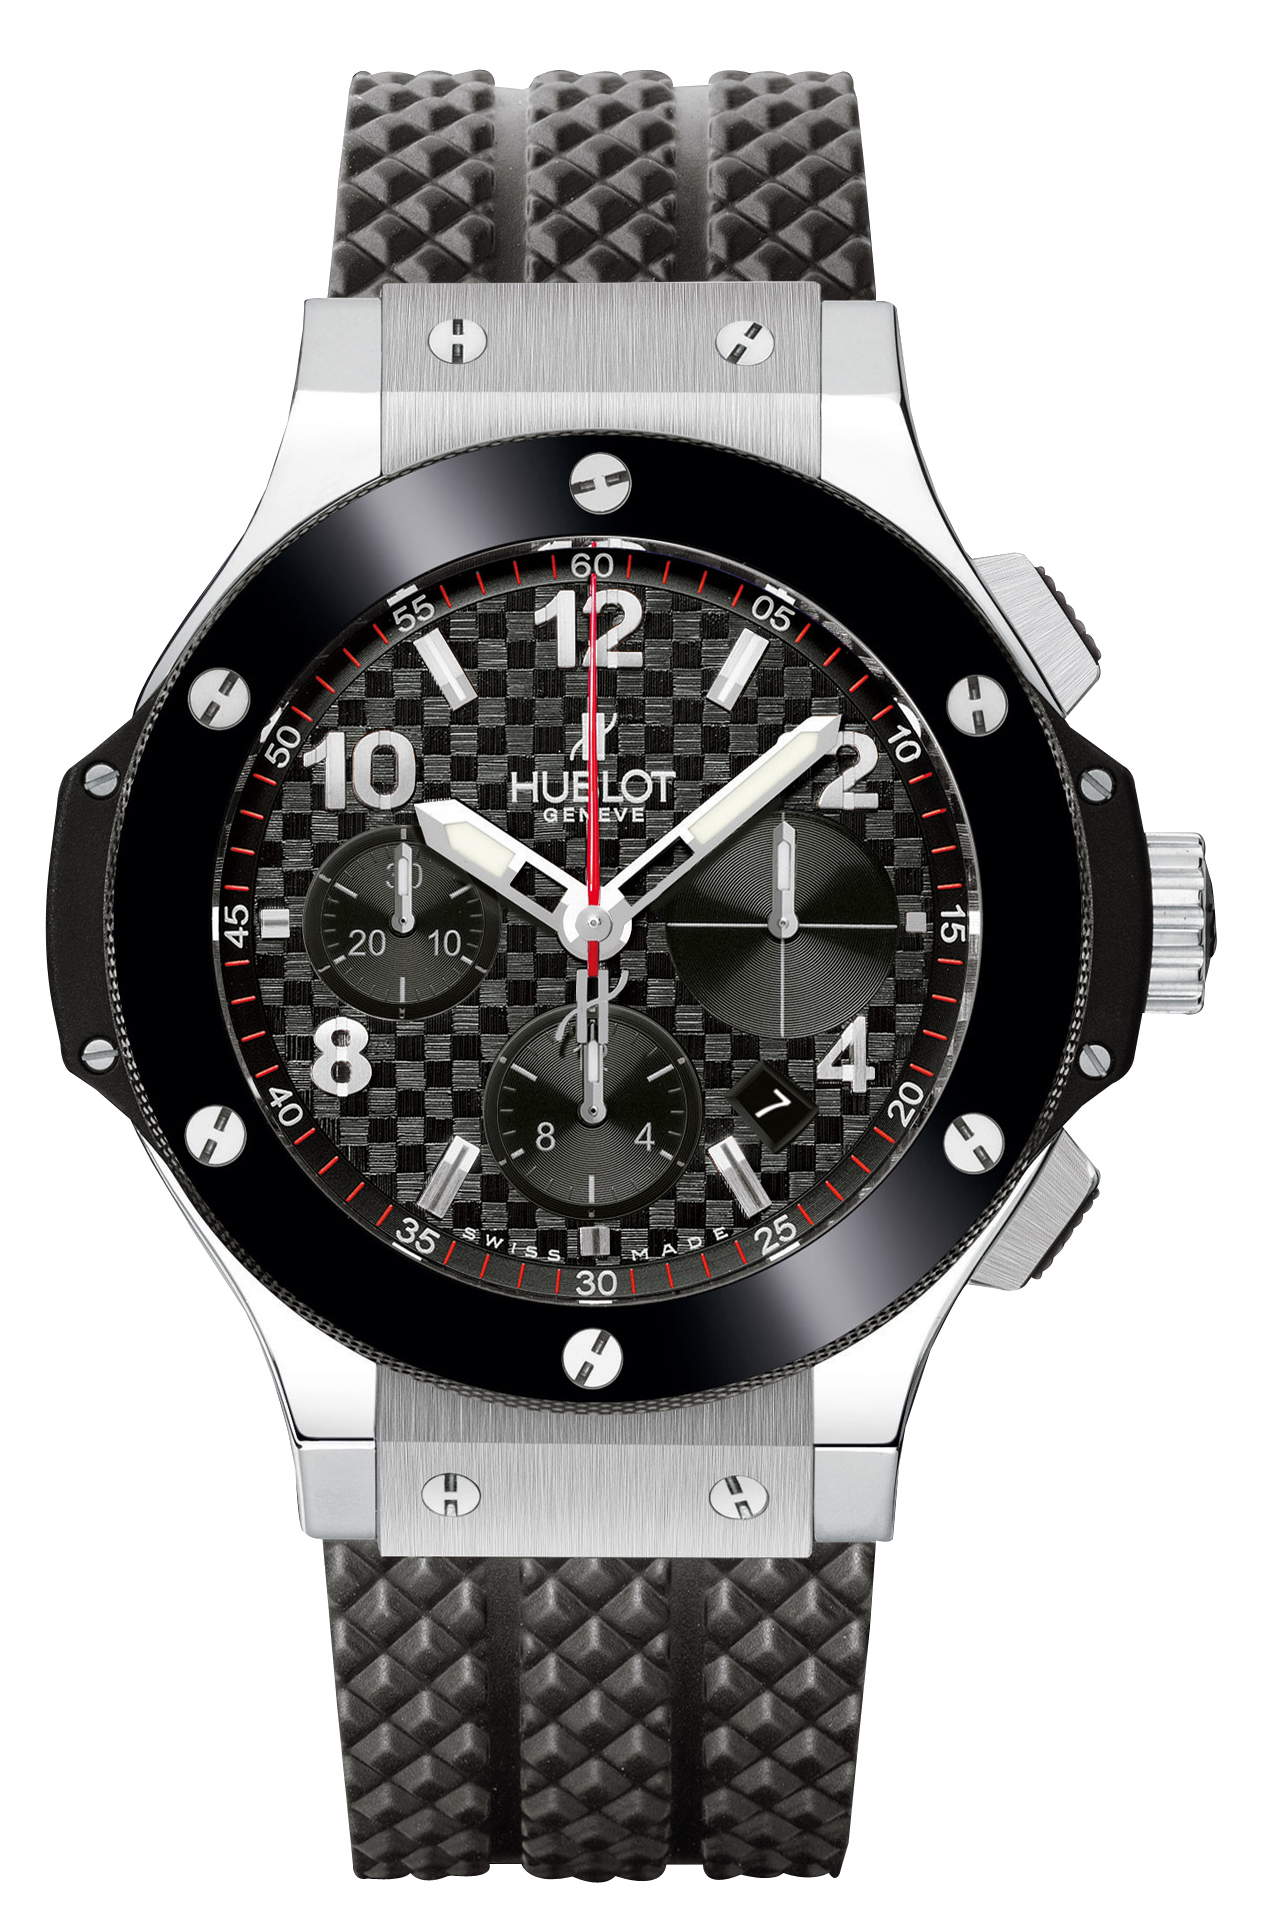 Hublot Big Bang 41 mm Herrklocka 342.SB.131.RX Svart/Gummi Ø41 mm - Hublot